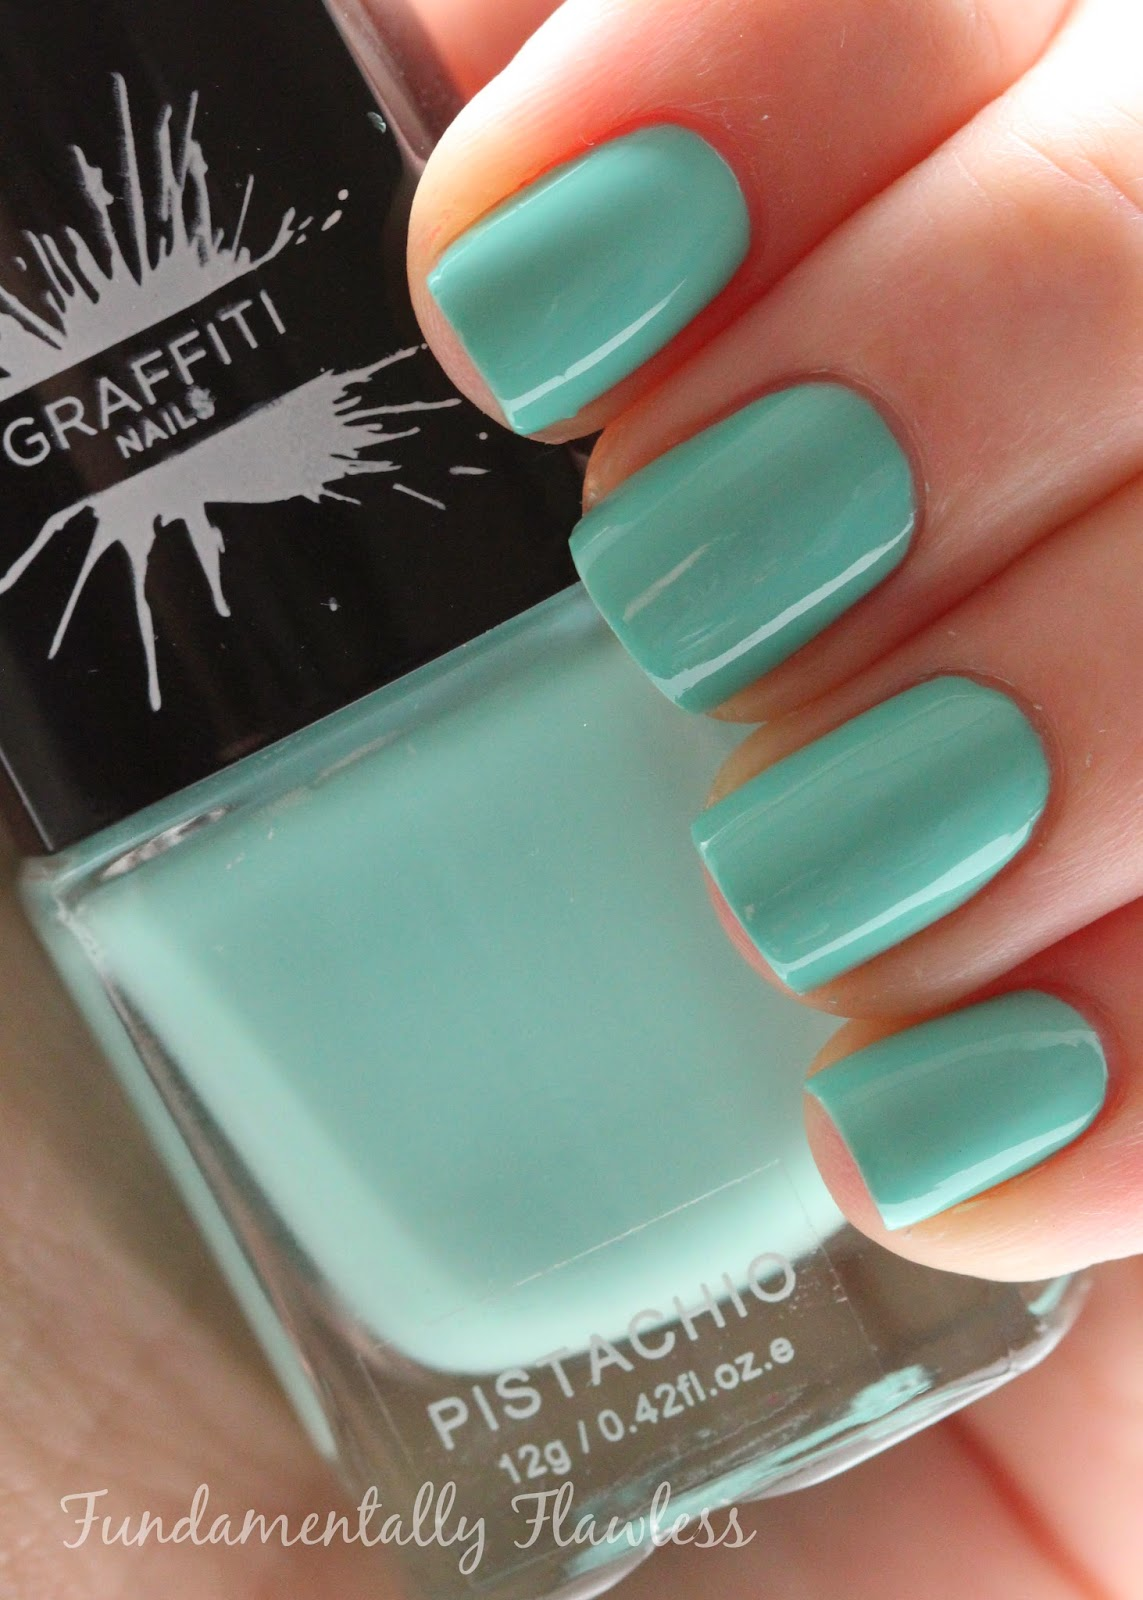 Graffiti Nails Pistachio swatch